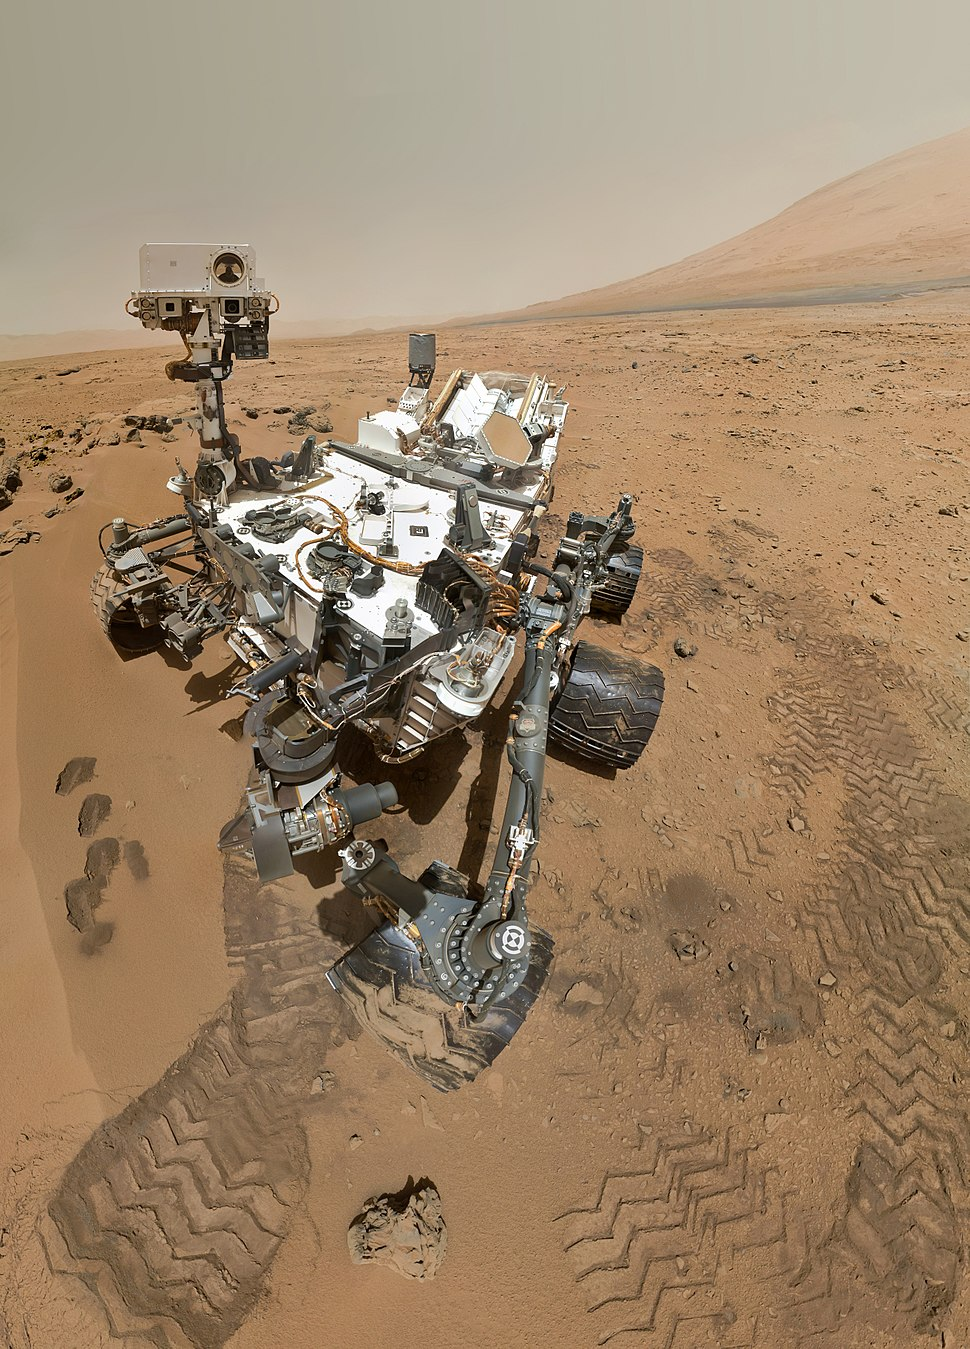 PIA16239 High-Resolution Self-Portrait by Curiosity Rover Arm Camera